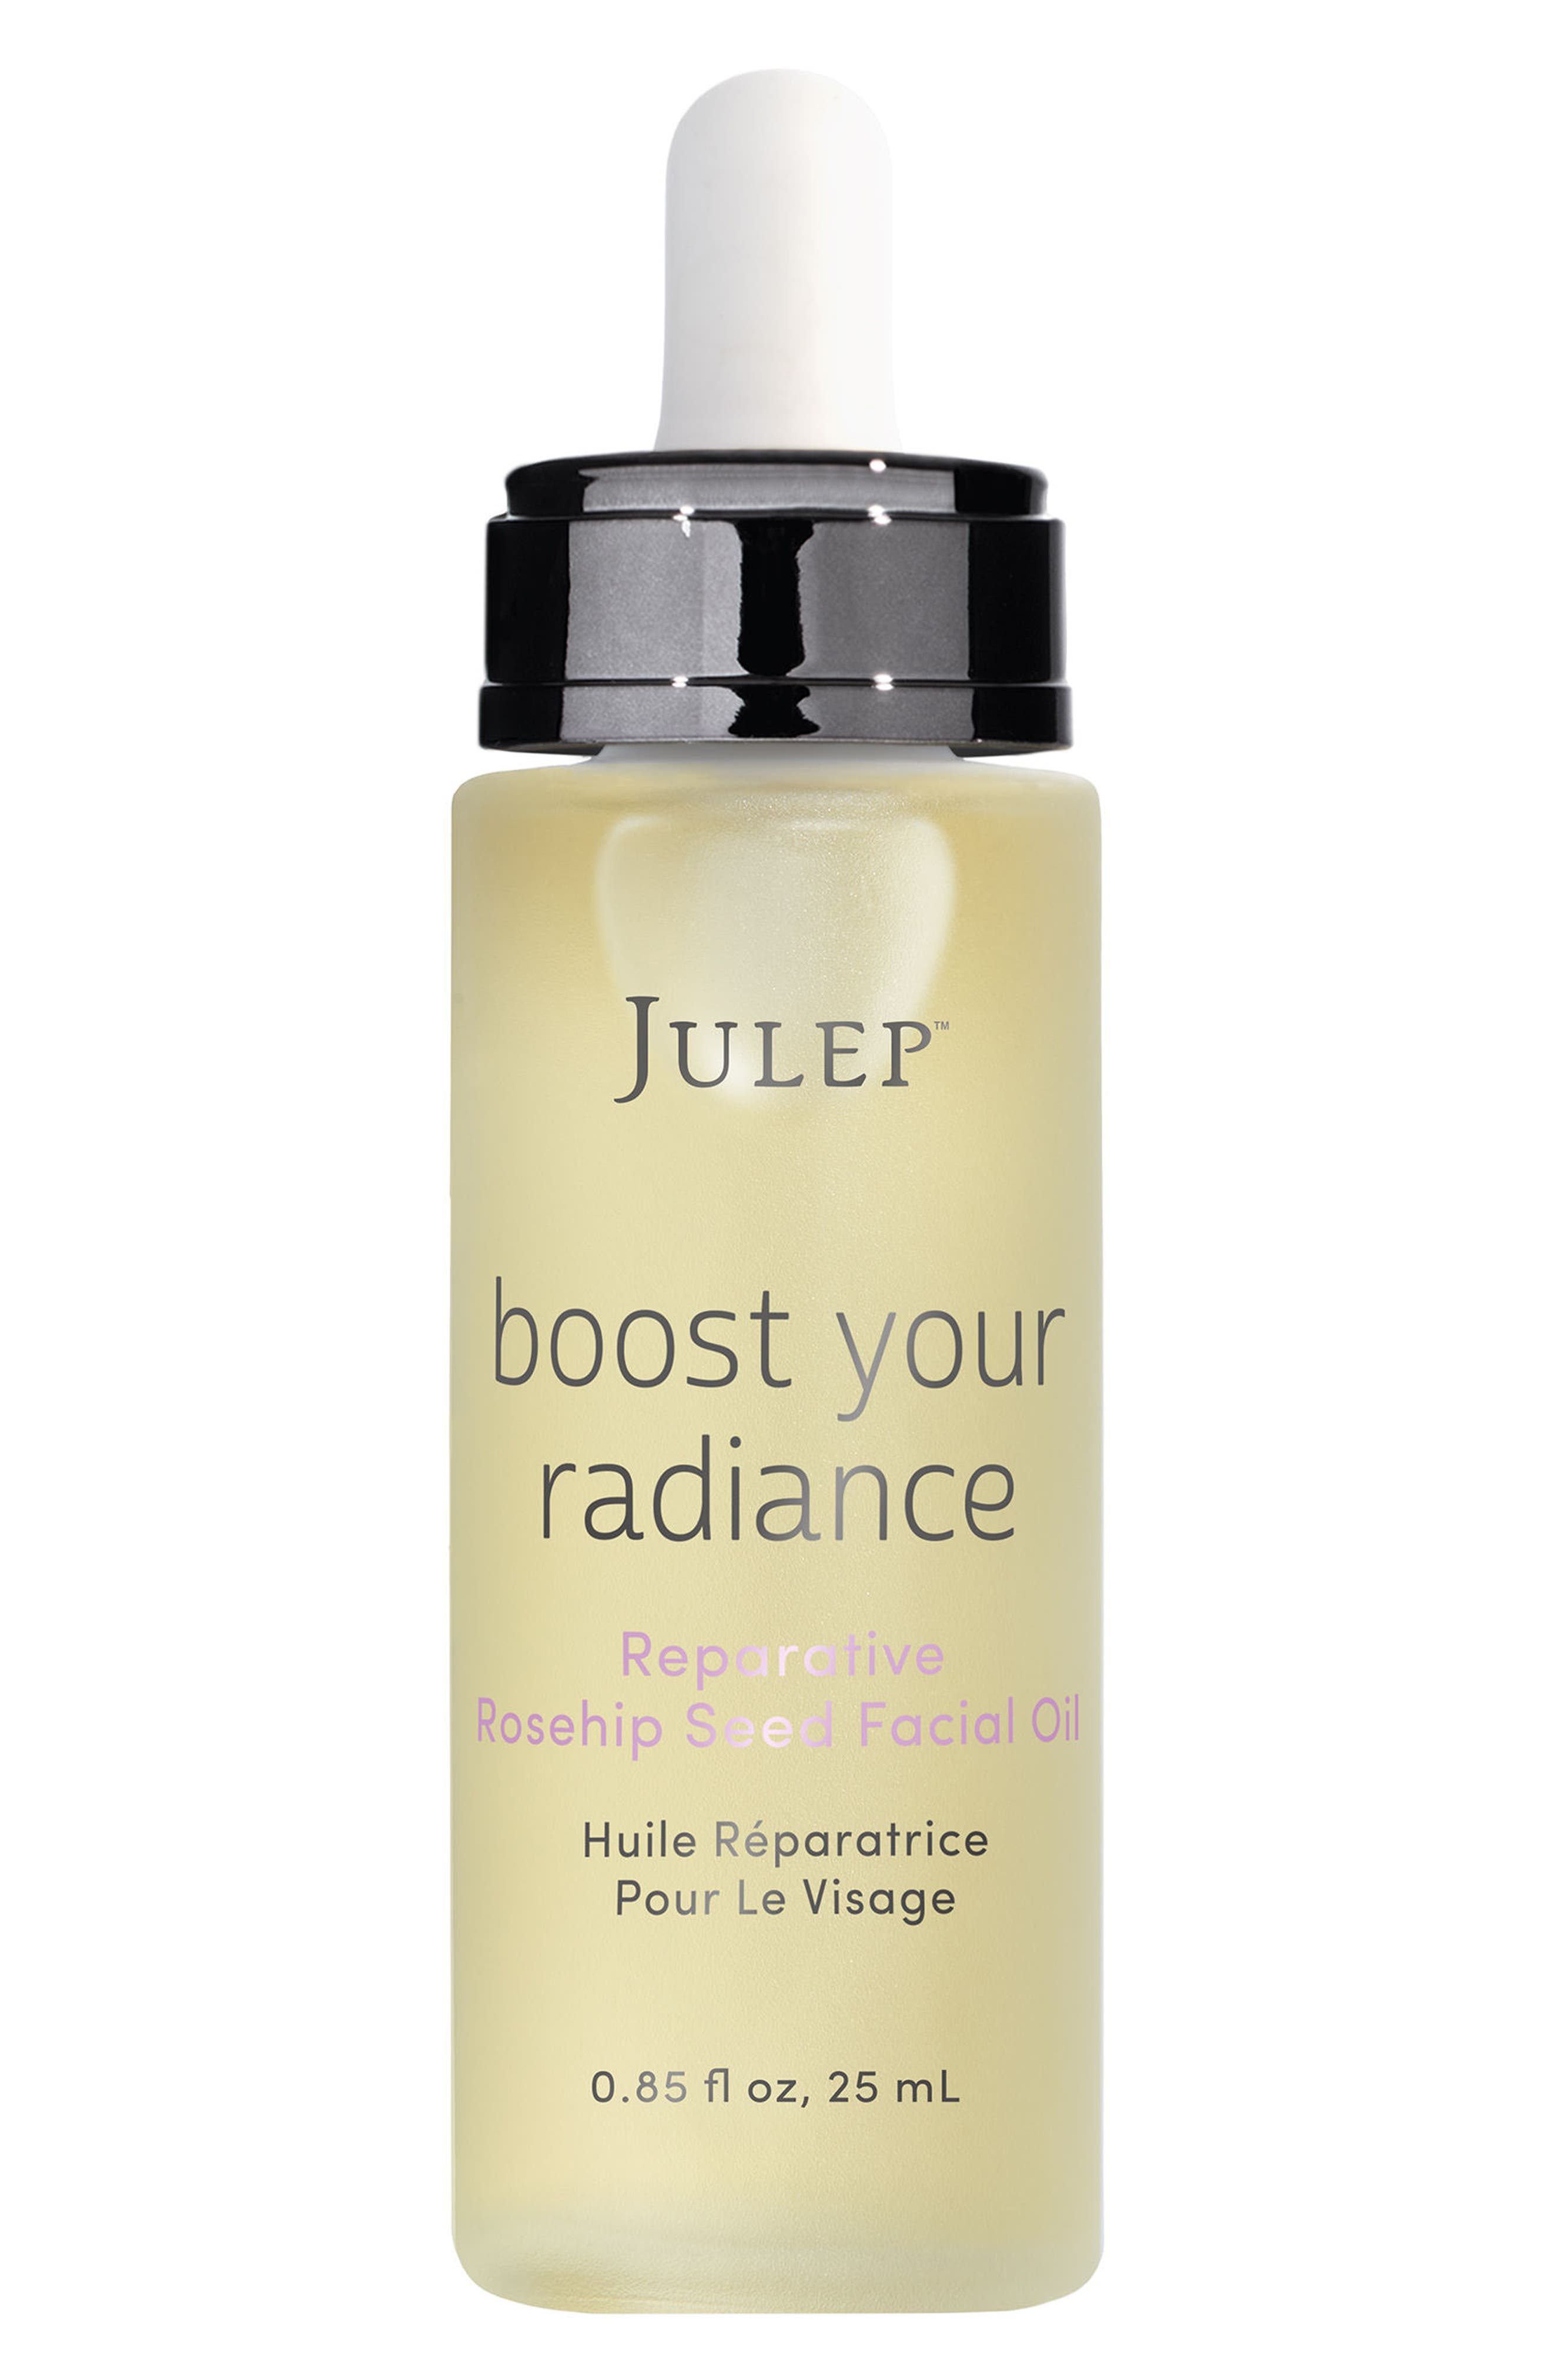 JULEP BEAUTY,                             Julep<sup>™</sup> Boost Your Radiance Reparative Rosehip Seed Facial Oil,                             Main thumbnail 1, color,                             000